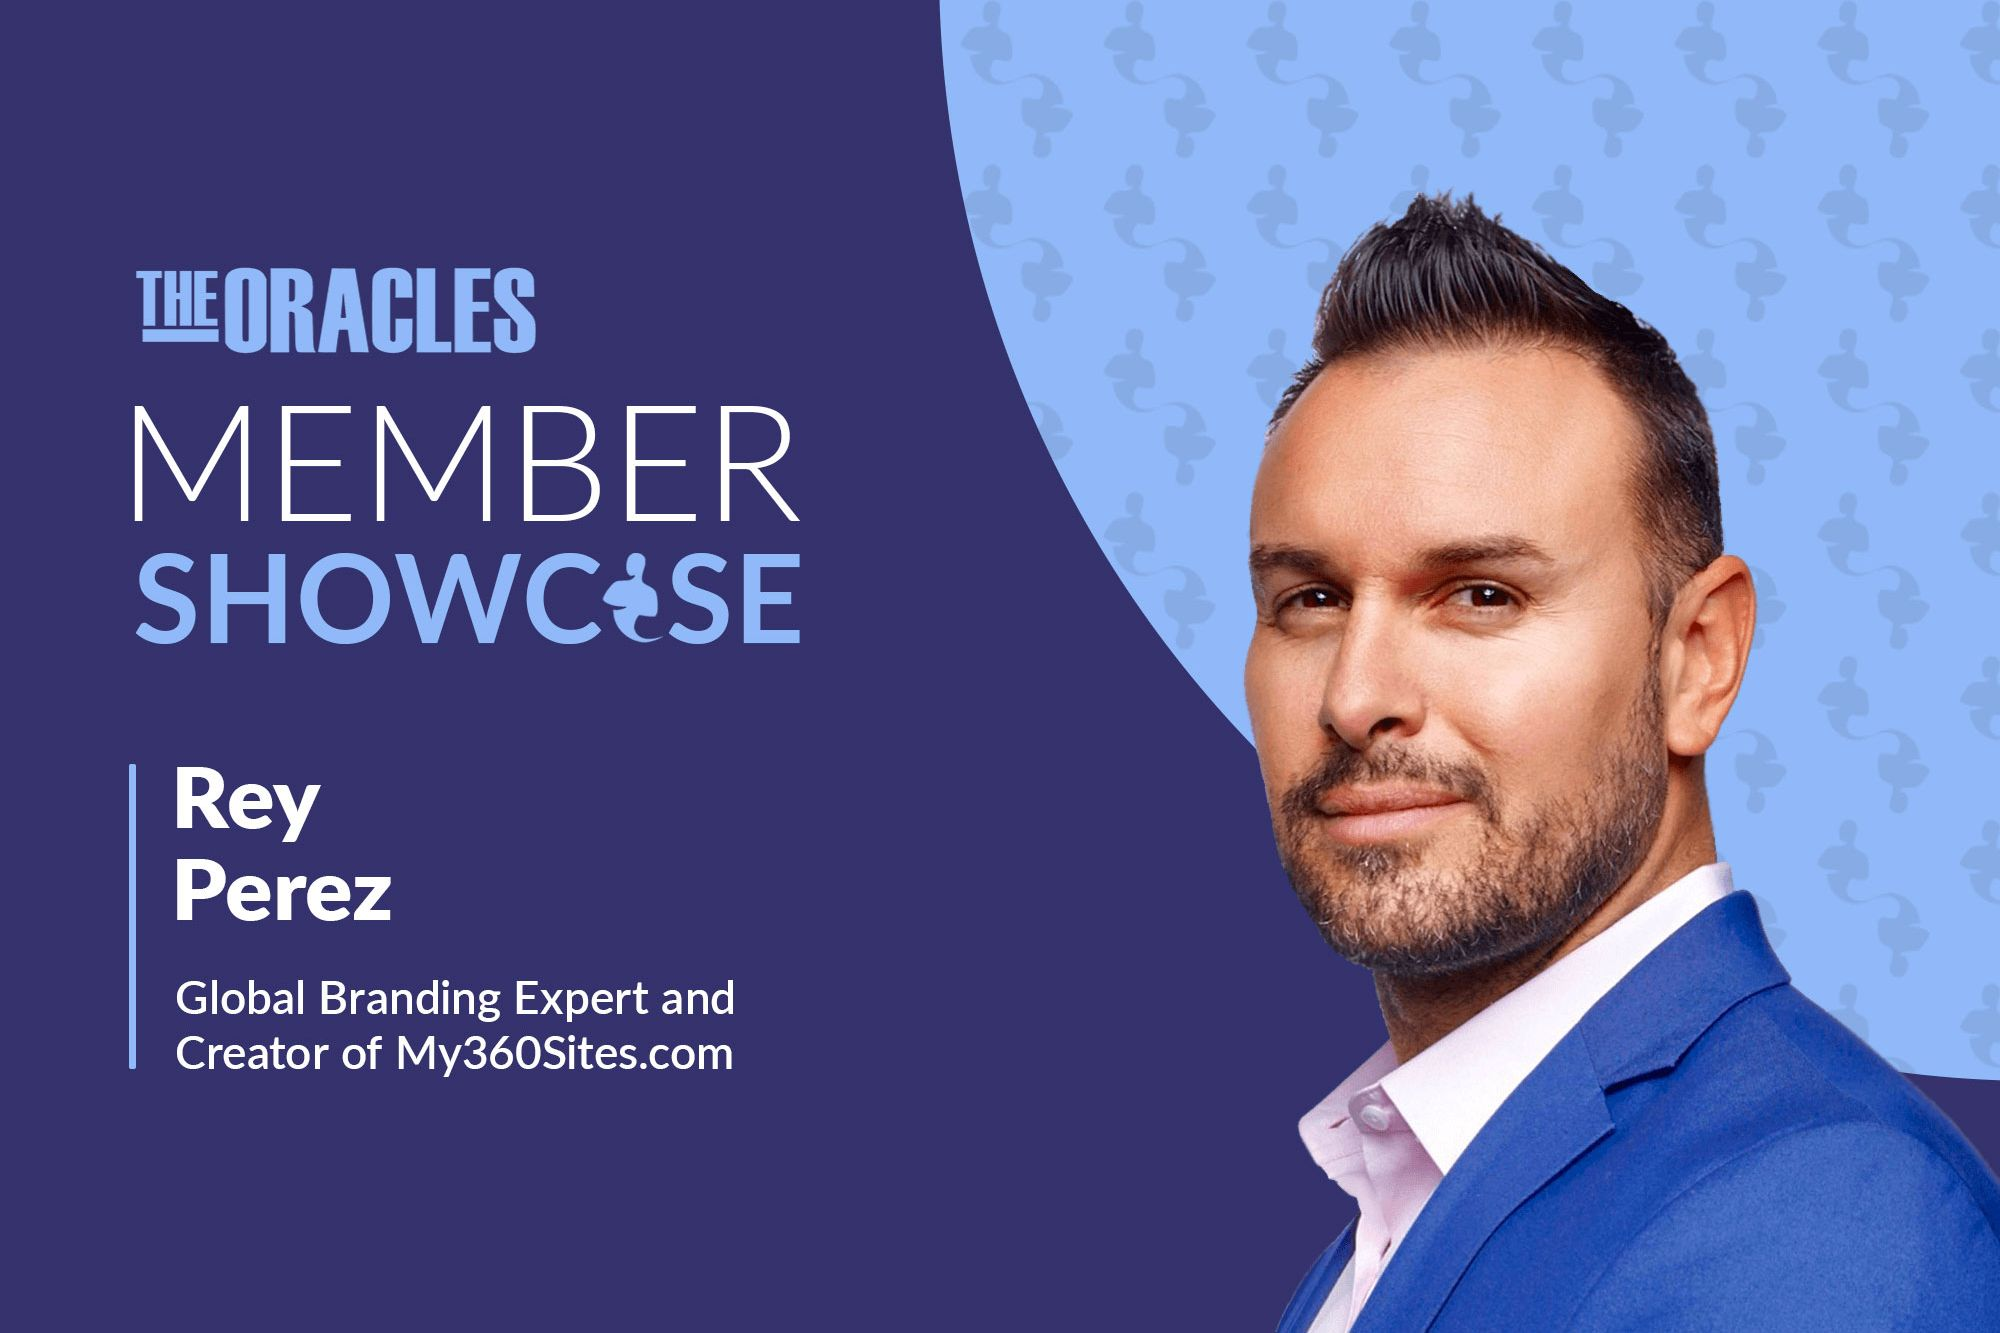 Branding Expert Rey Perez on Empowering Others and His Life's Mission to Be a 'Kingmaker'